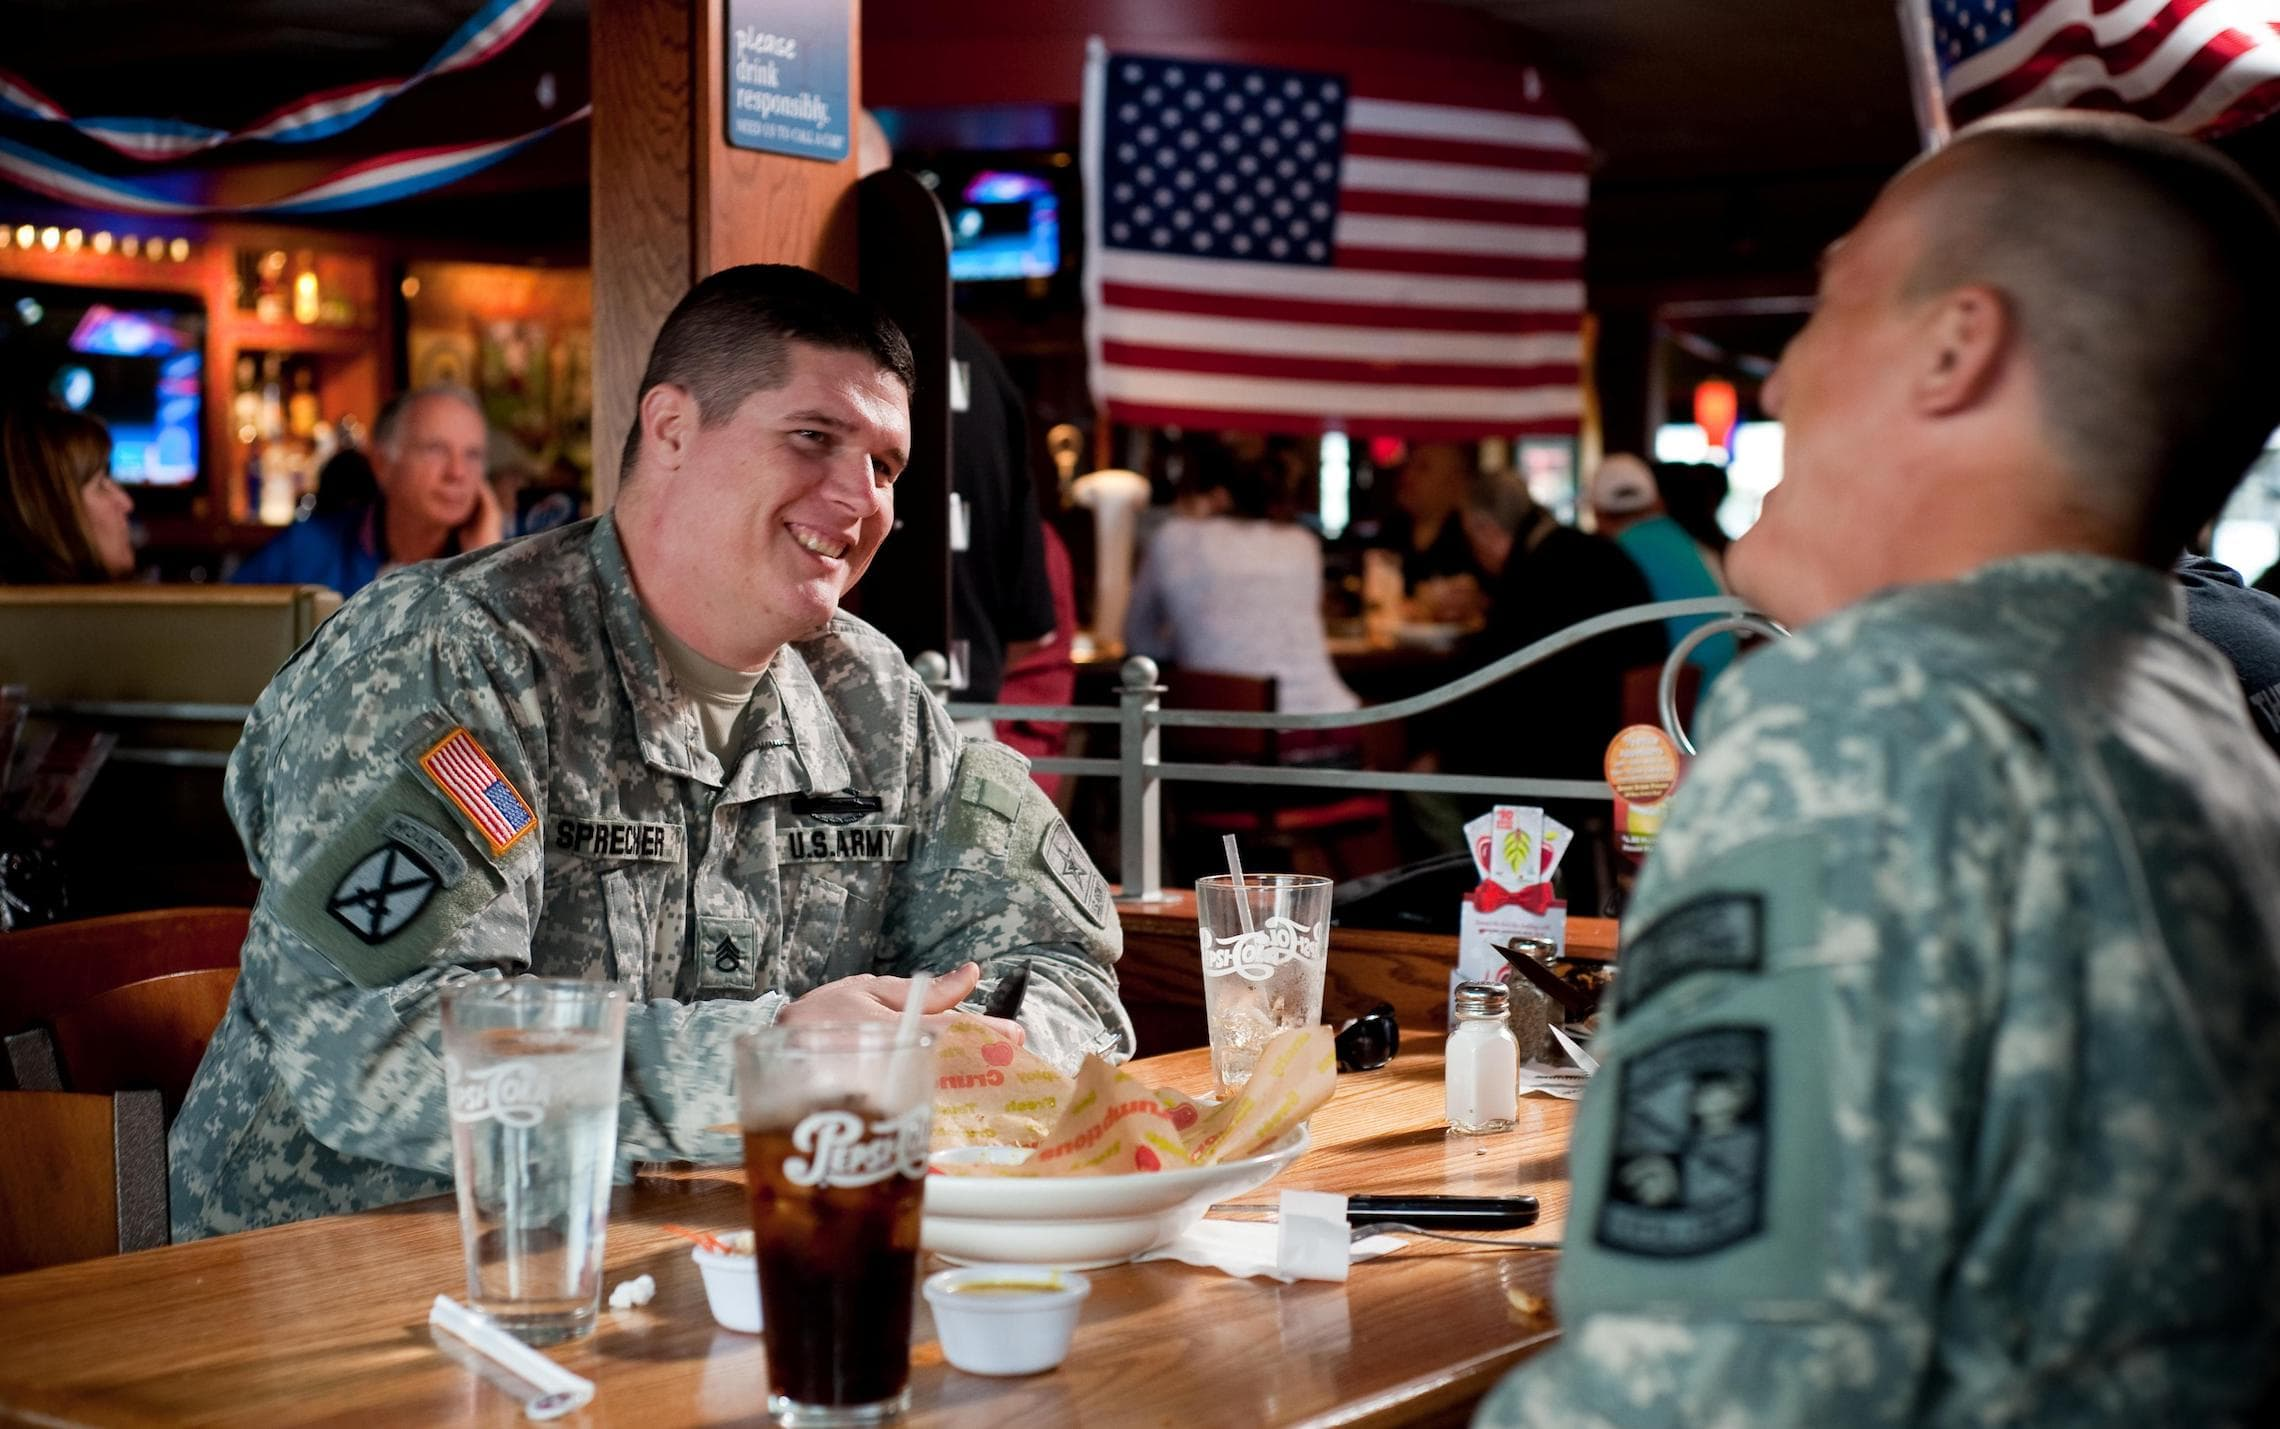 Veterans day 2019 Free Meals, Free Veterans Day Meals